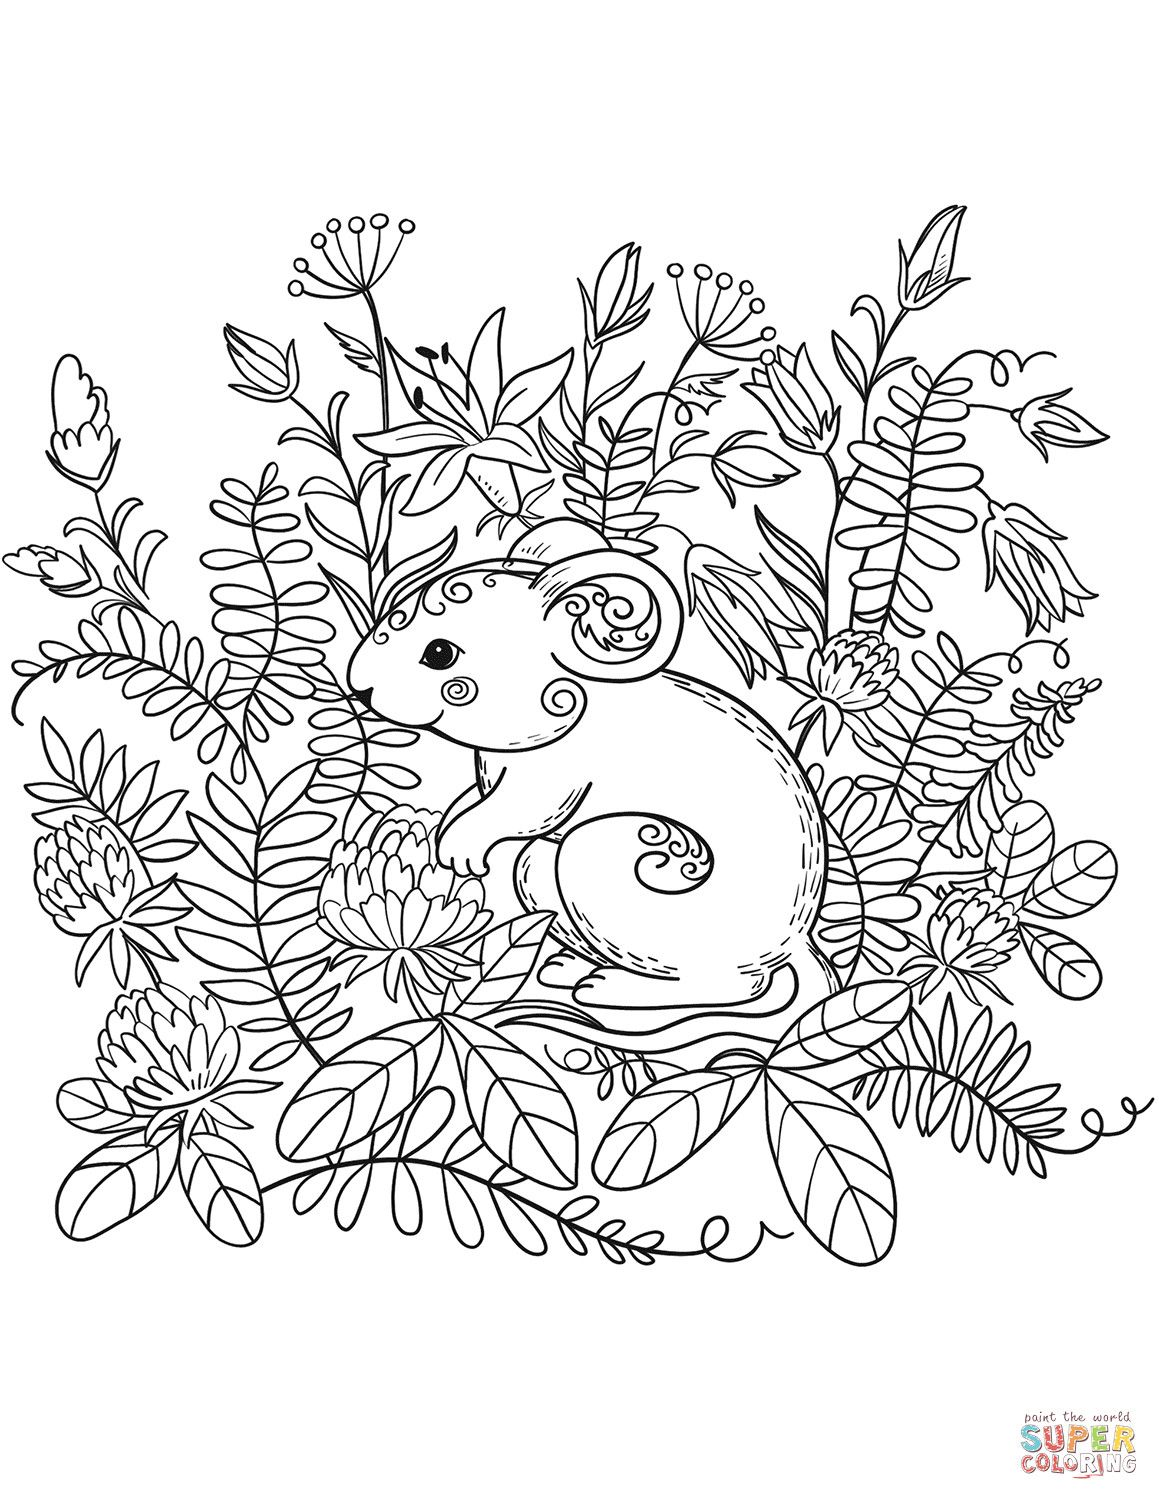 Mouse Coloring Page On Forest Animals Coloring Pages Animal Coloring Books Animal Coloring Pages Coloring Pages